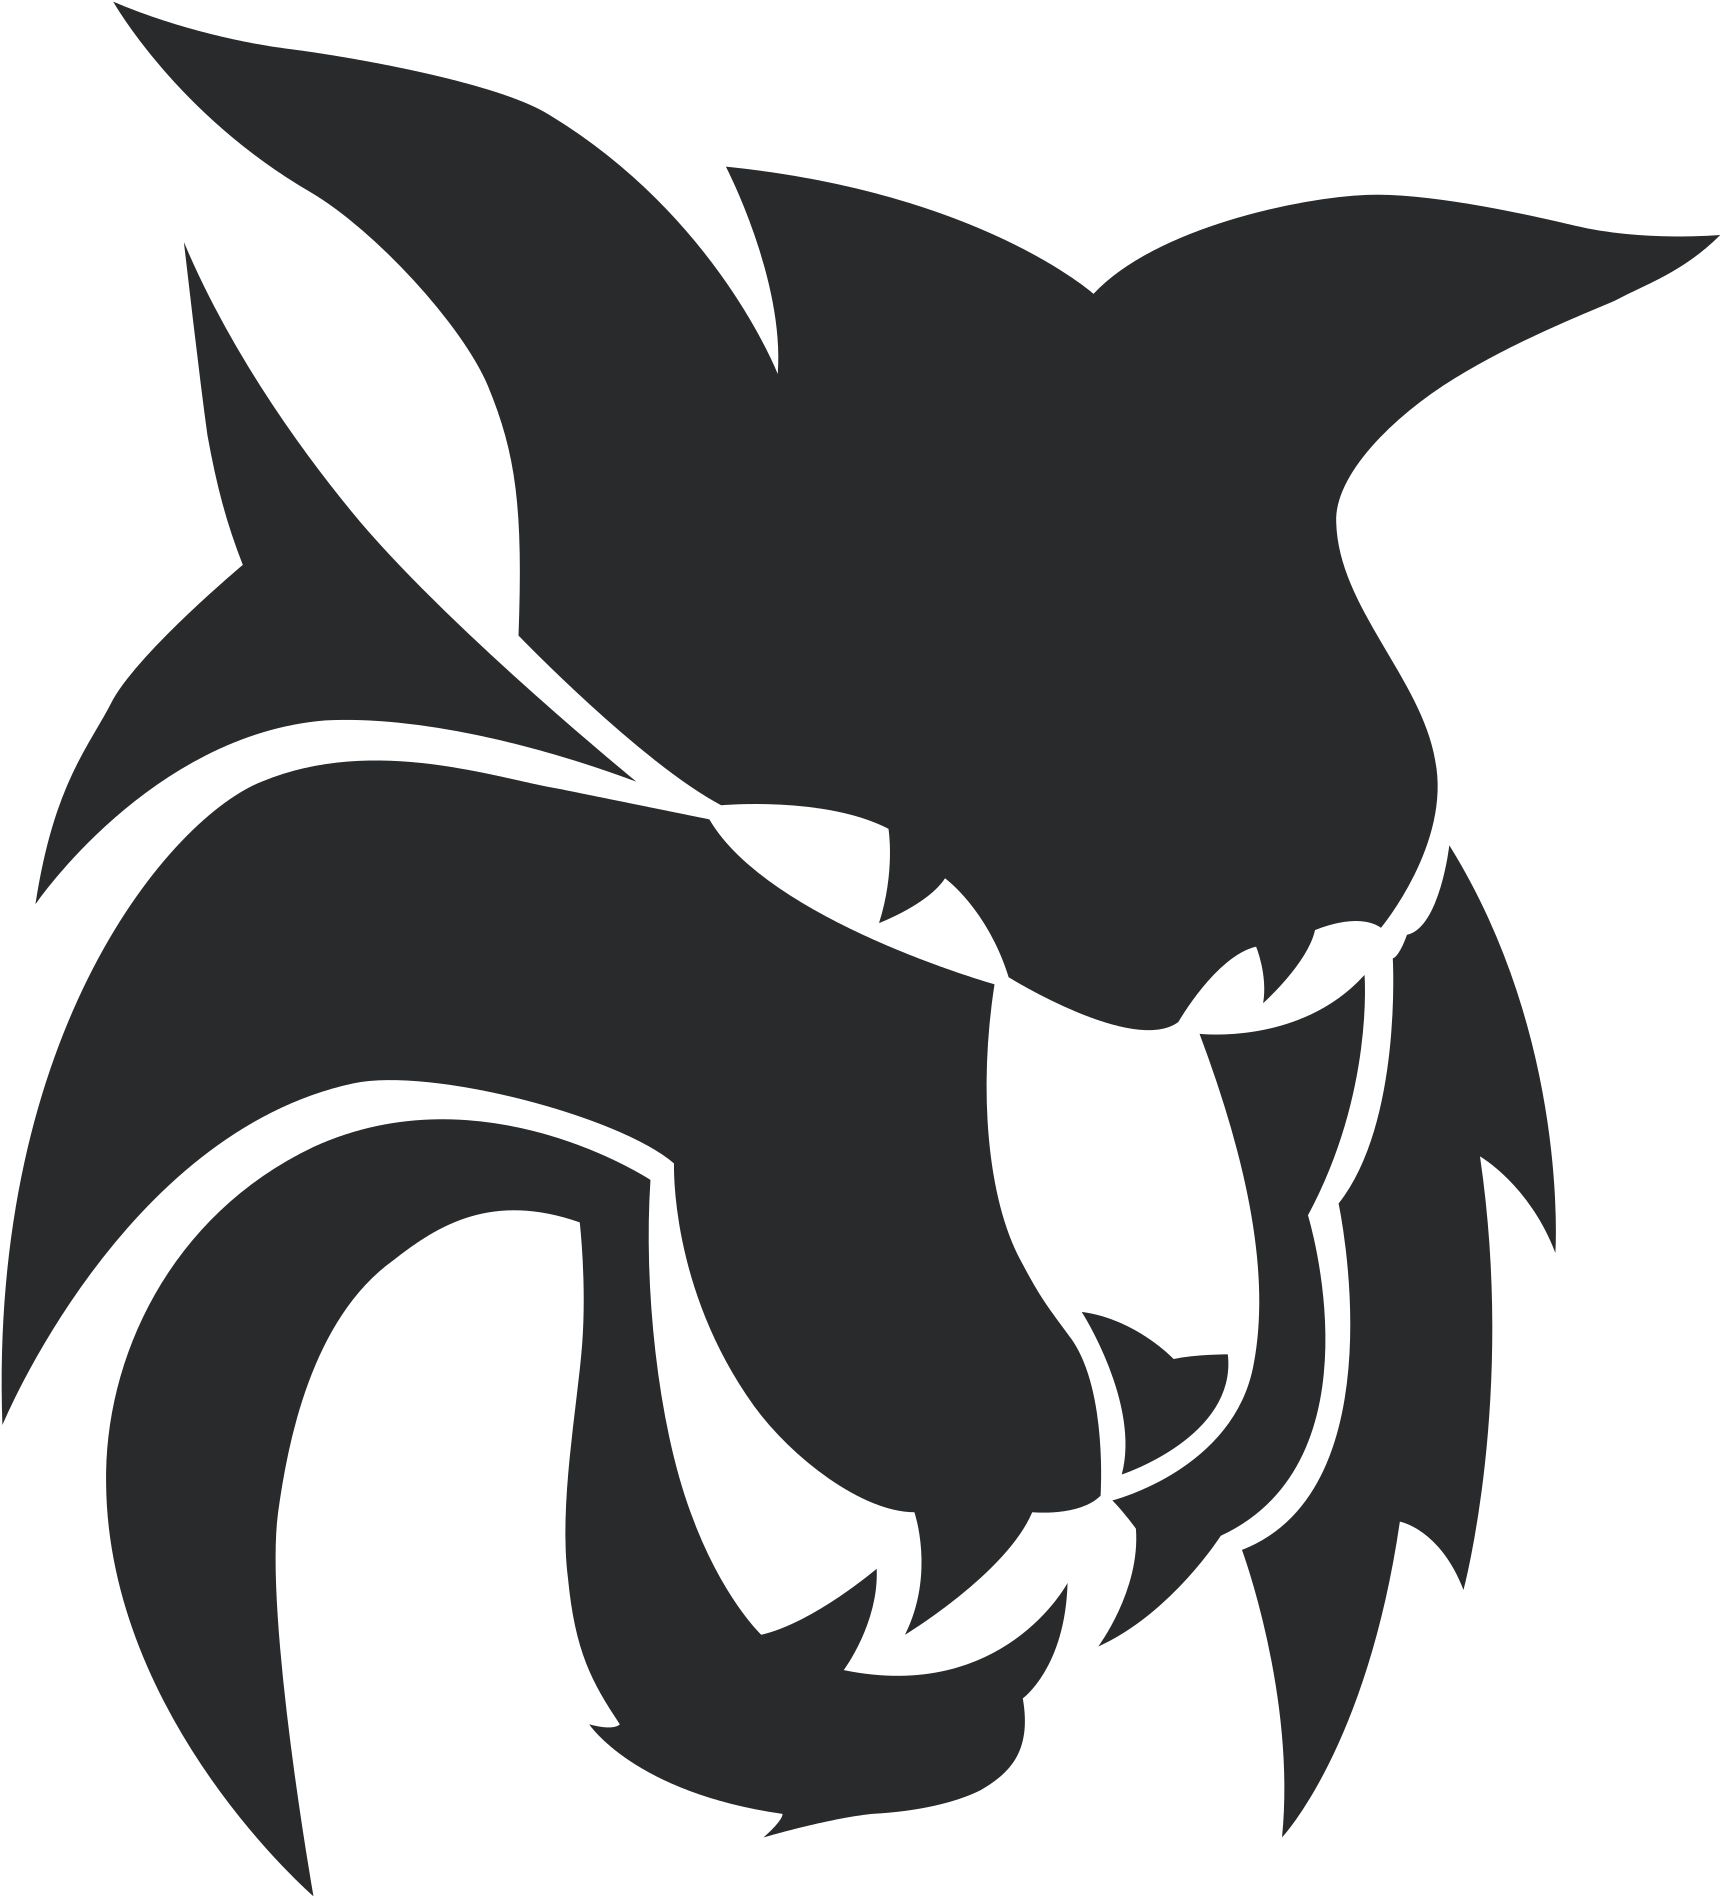 Cwu Wildcat Logo Png Transparent Svg Vector Cwu.